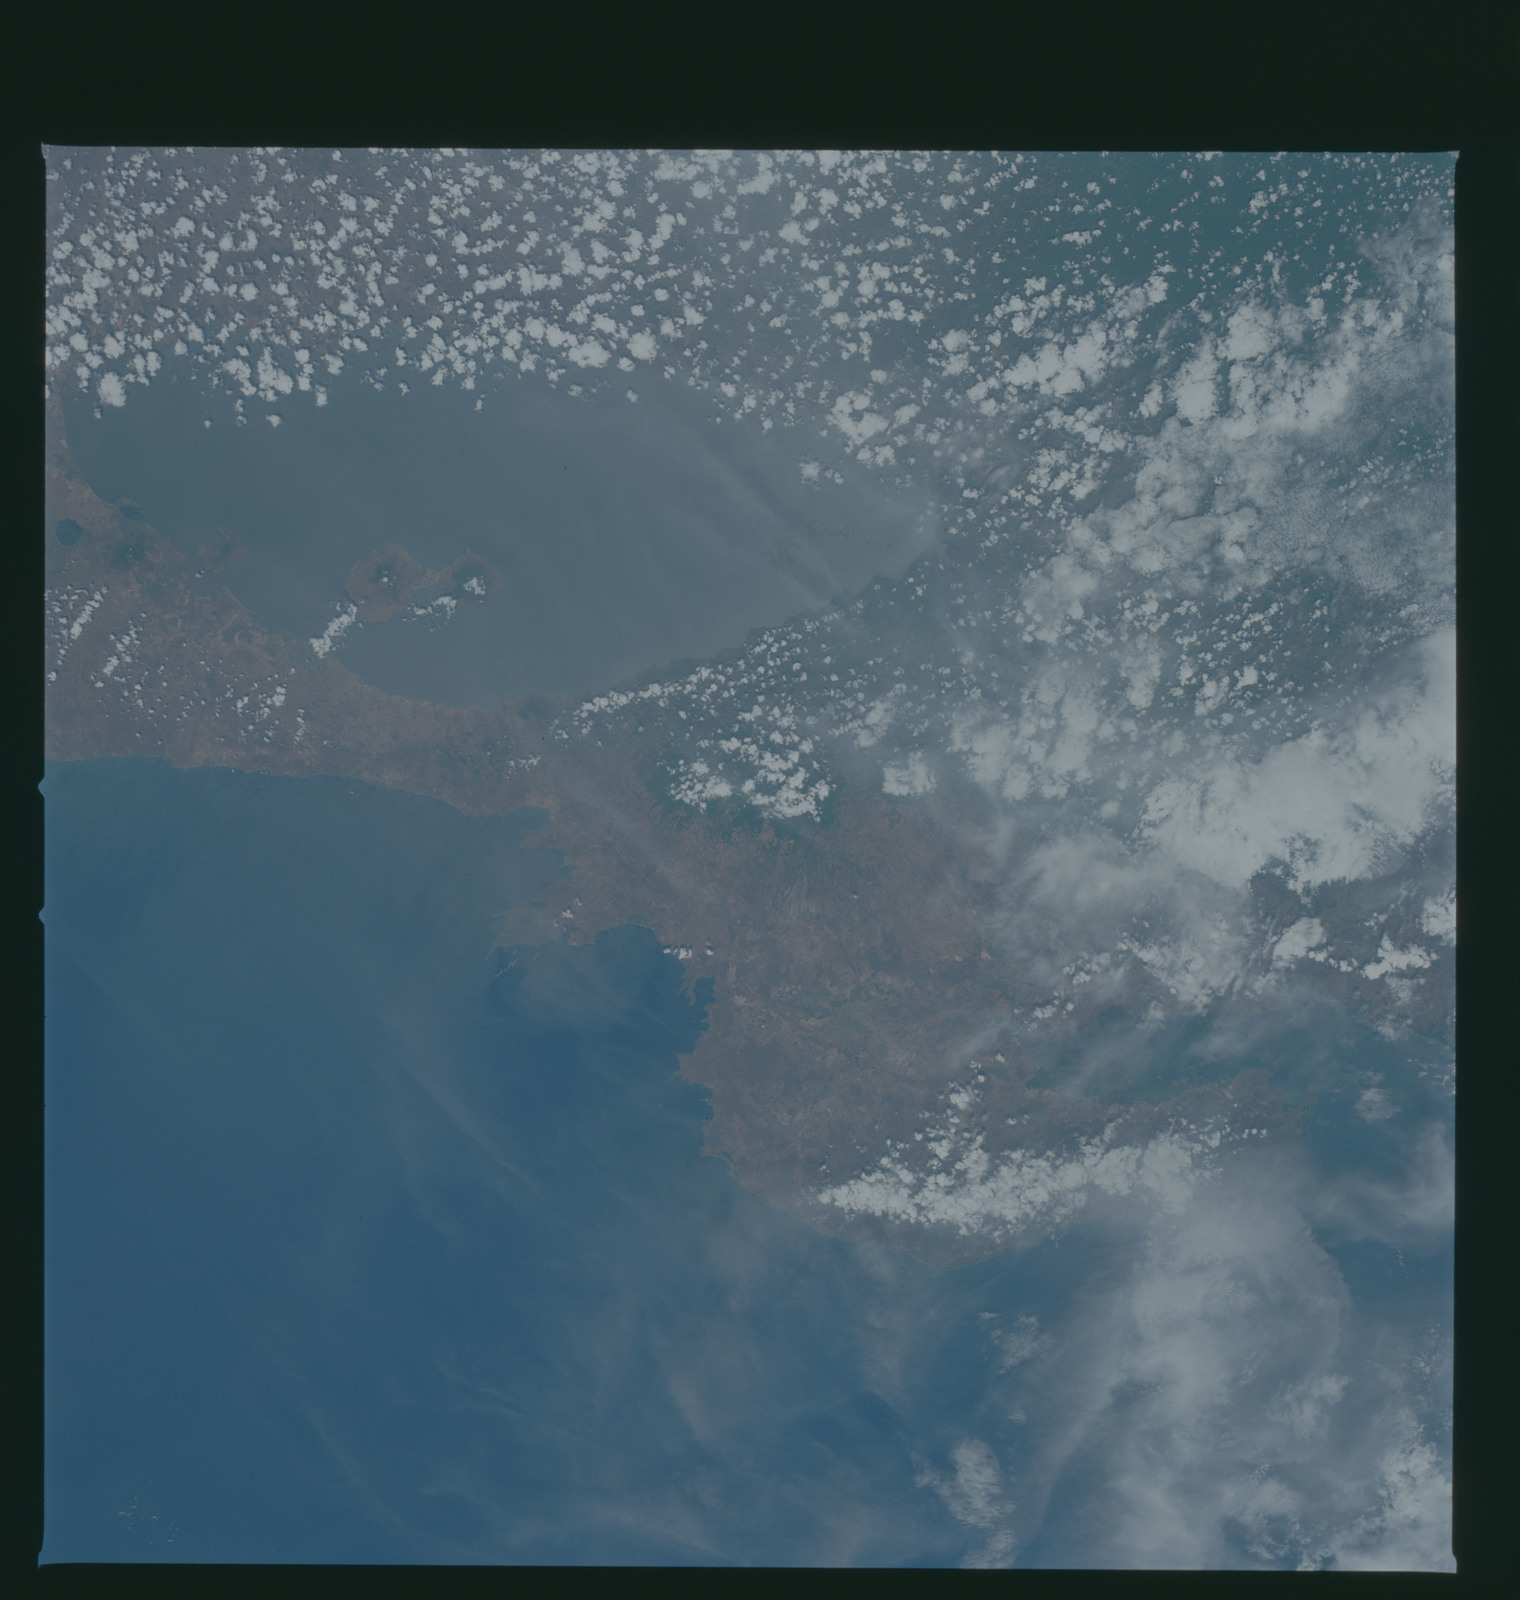 S37-96-052 - STS-037 - Earth observations taken from OV-104 during STS-37 mission